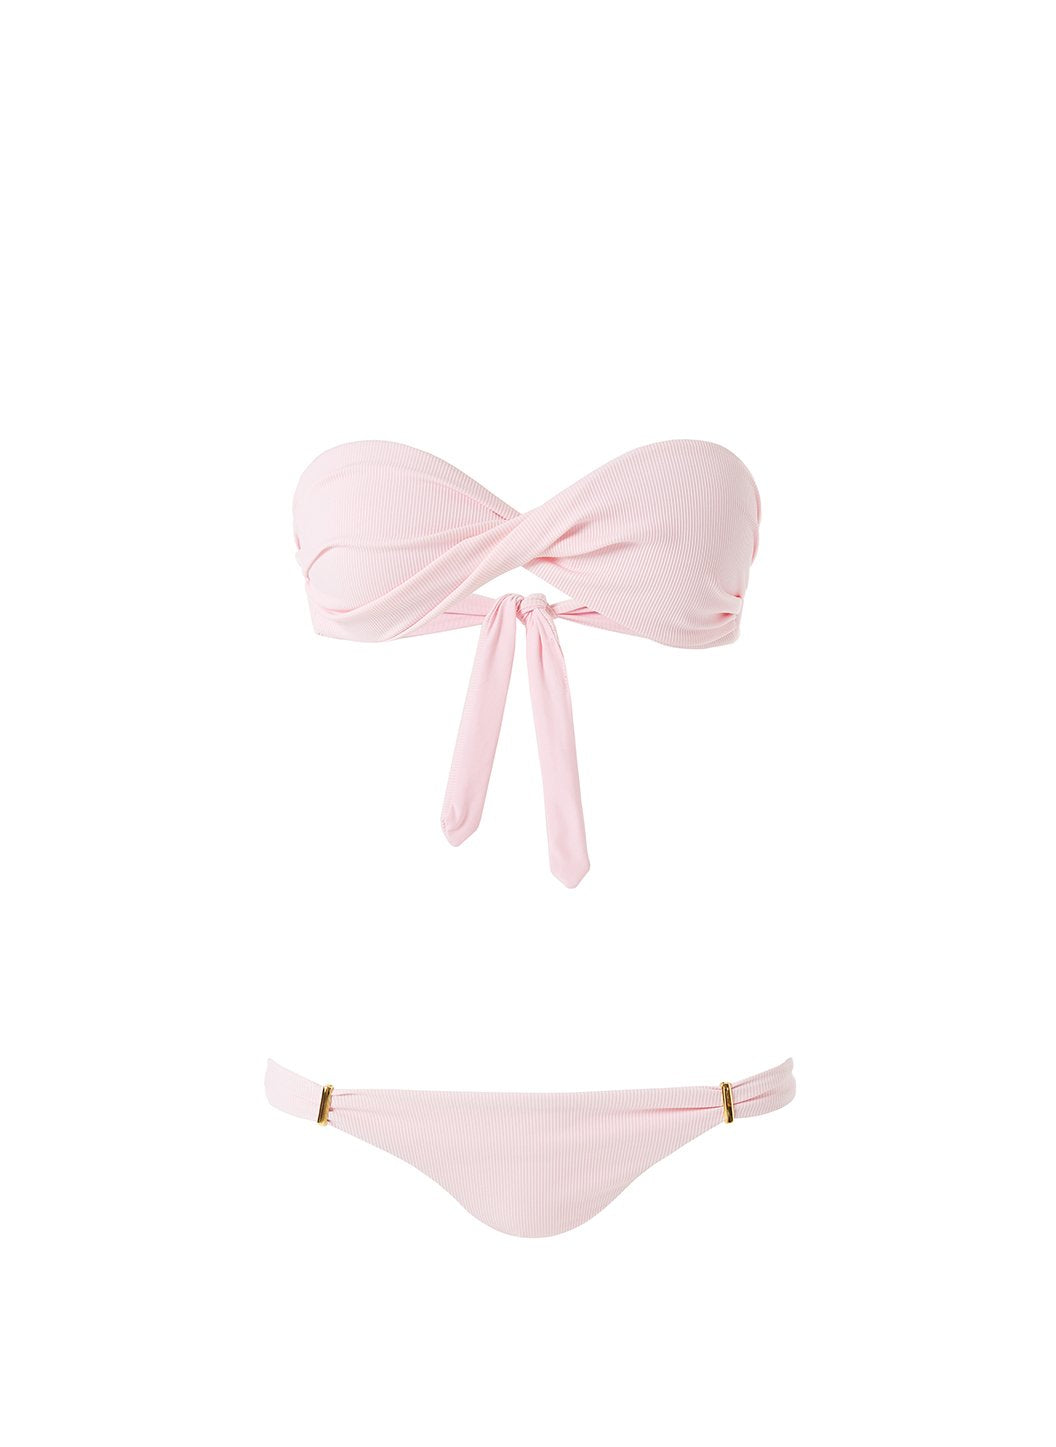 Martinique Ribbed Blush Bikini Cutout